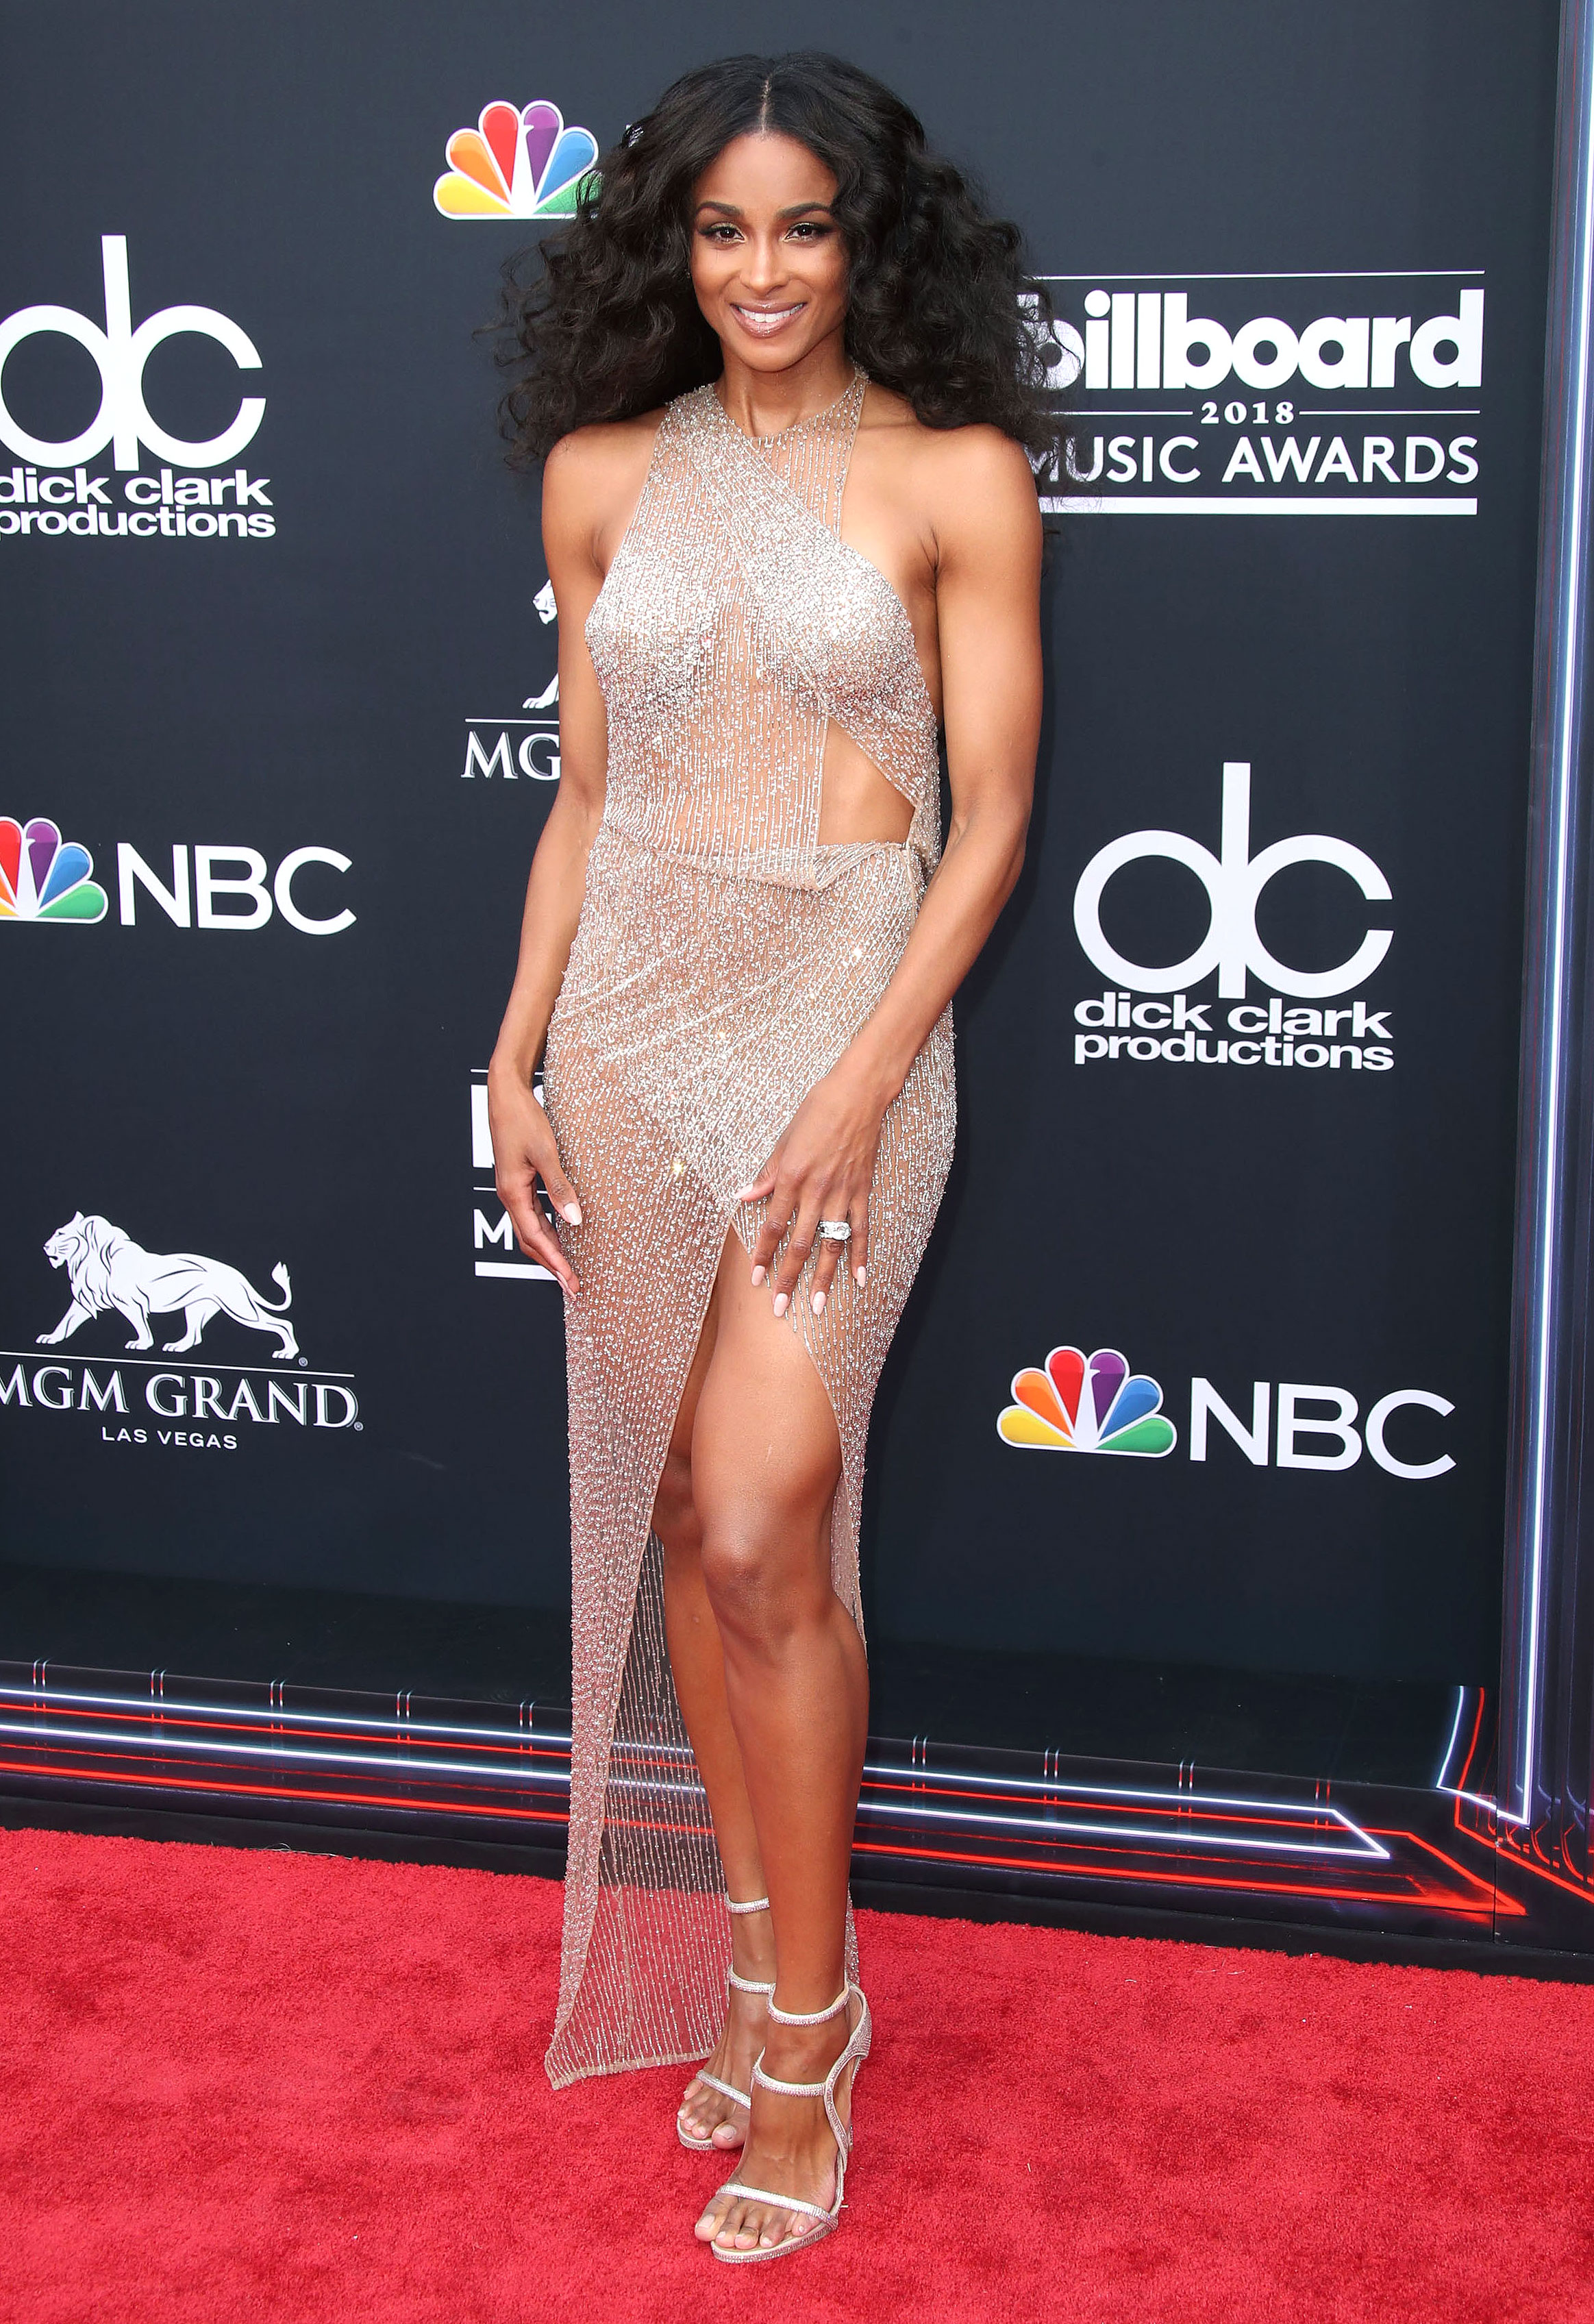 ciara - In a Julien Macdonald nearly naked gown, Le Vian earrings and strappy Le Silla sandals at the Billboard Music Awards.